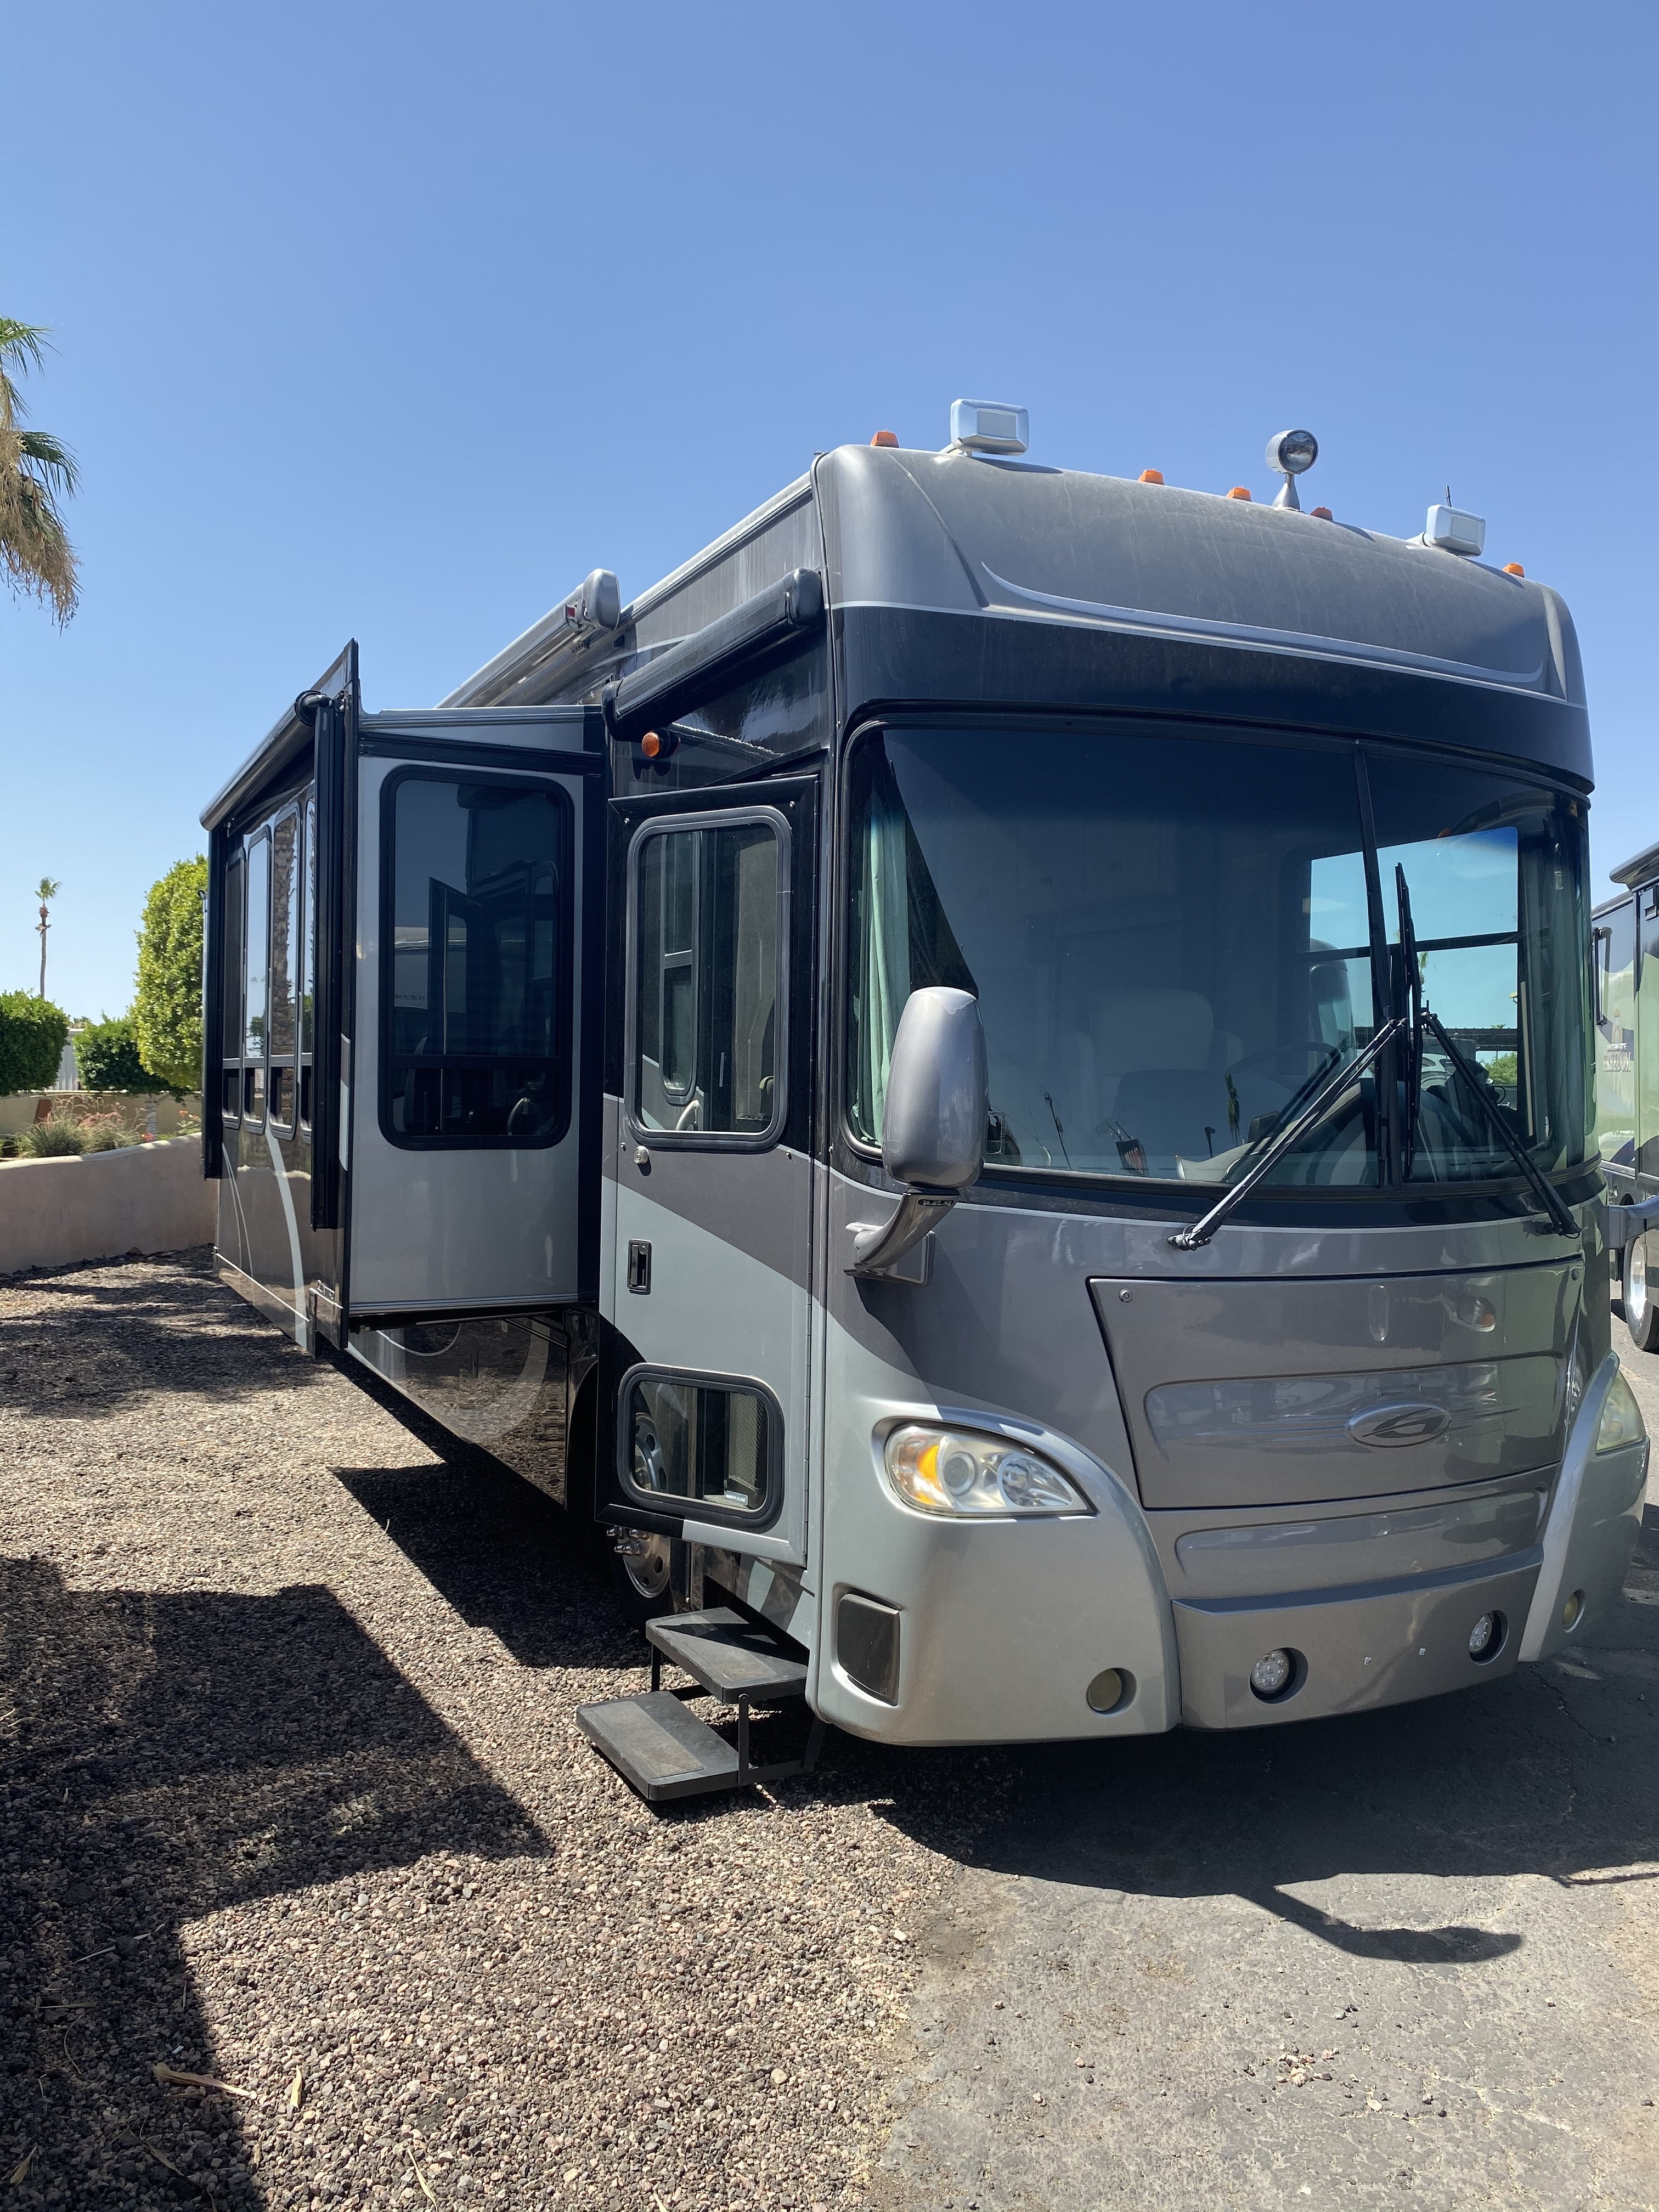 Used, 2007, Gulf Stream, Friendship G8 4818, RV - Class A